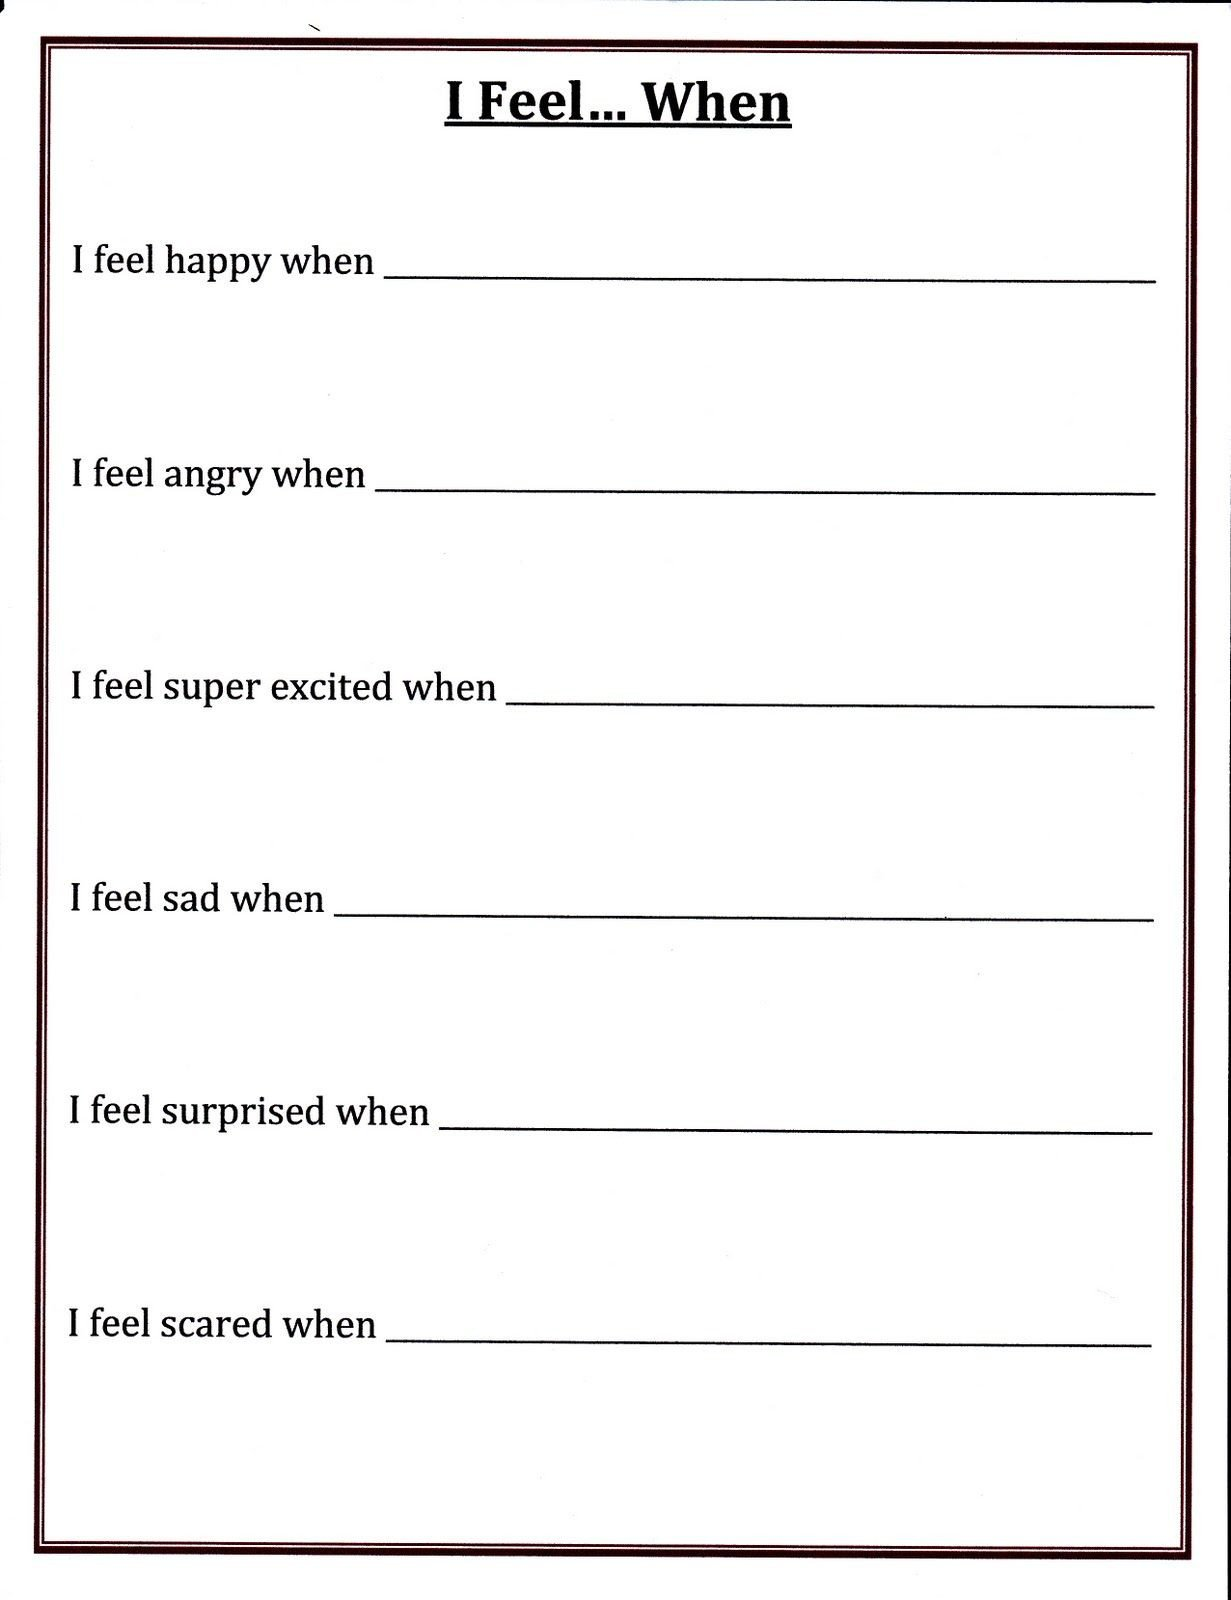 Confidence Building Worksheets Img 1 231—1 600 Pixels